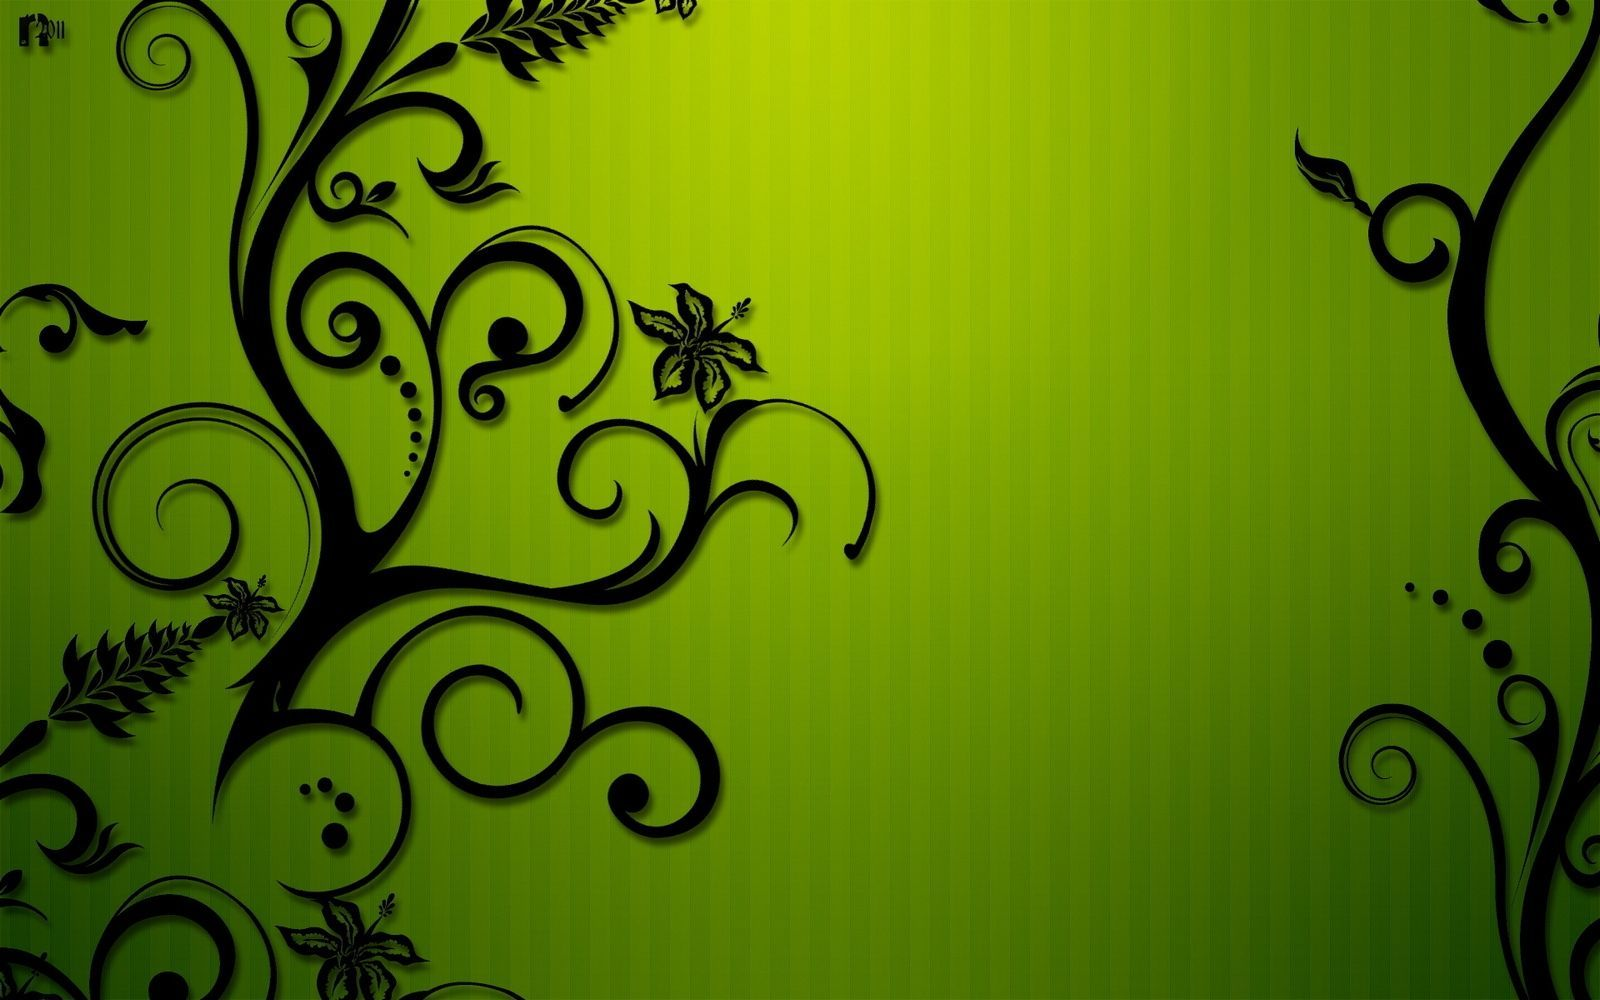 1600x1000 Wallpapers For > Neon Green Abstract Wallpaper | green | Pinterest ...